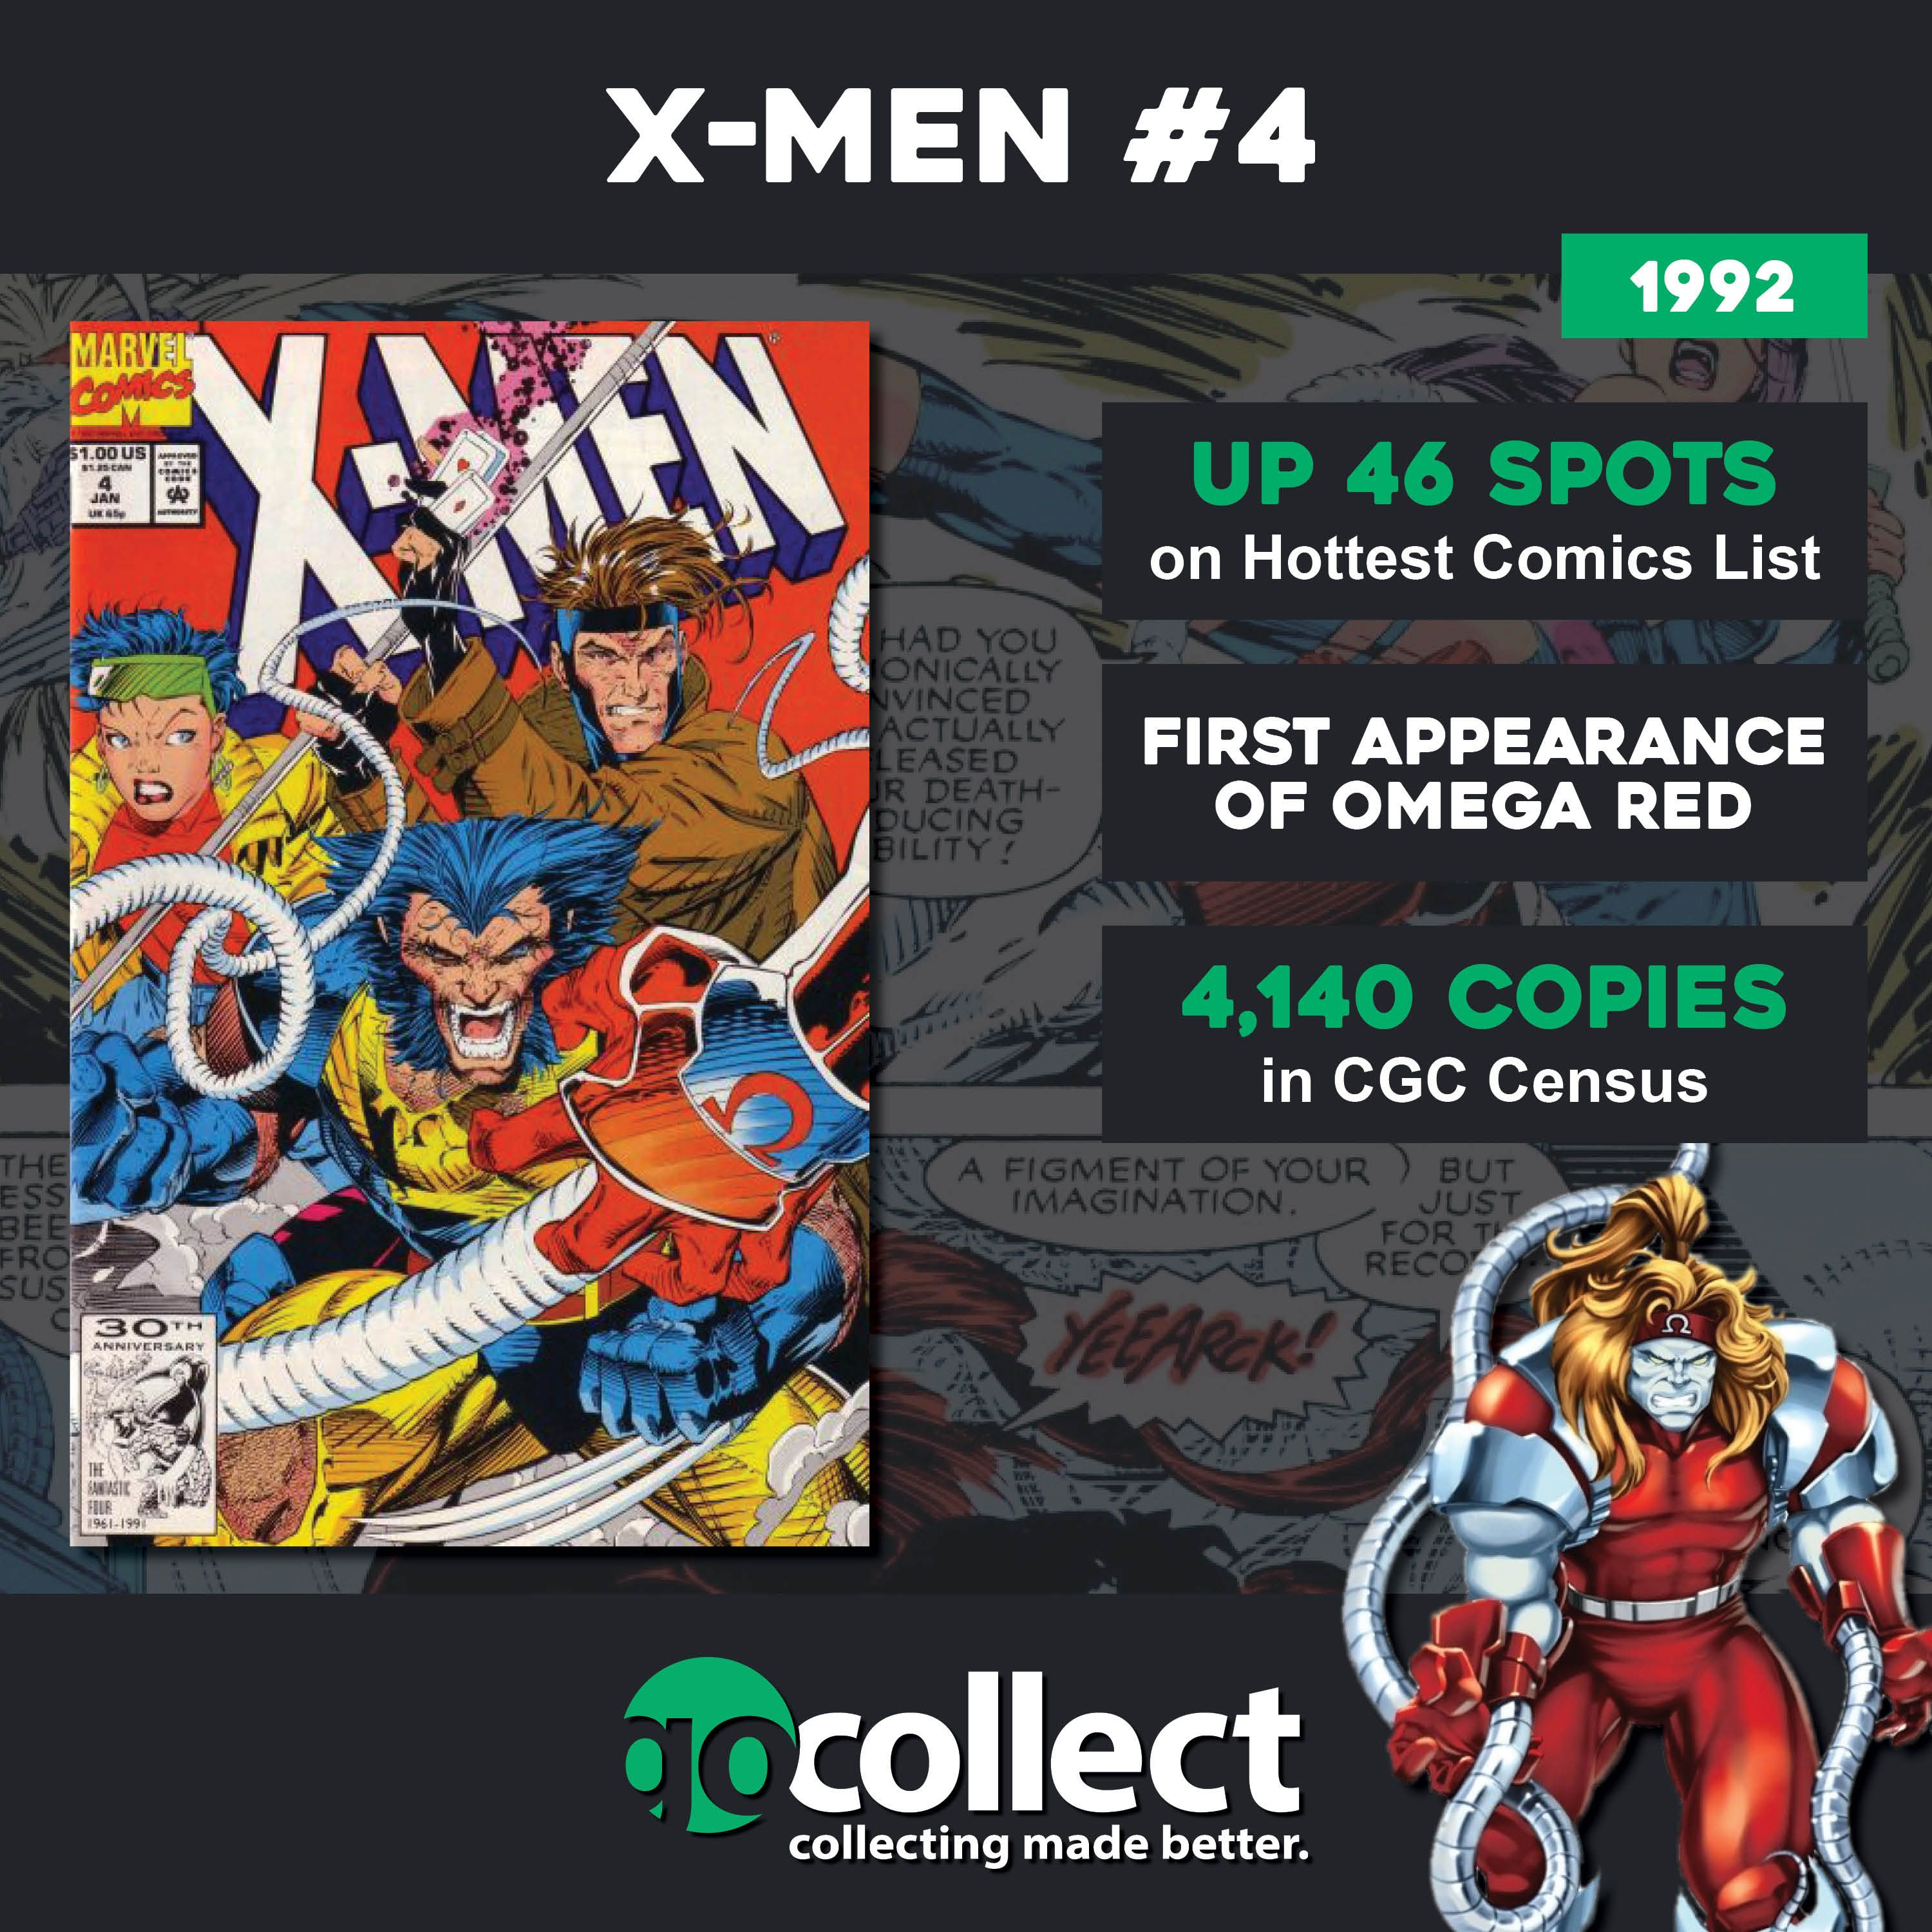 X Men 4 Climbed The Hottest Comics List 46 Spots To The Top 10 This Is The First Appearance Of Omega Red There Are 4 140 Copie